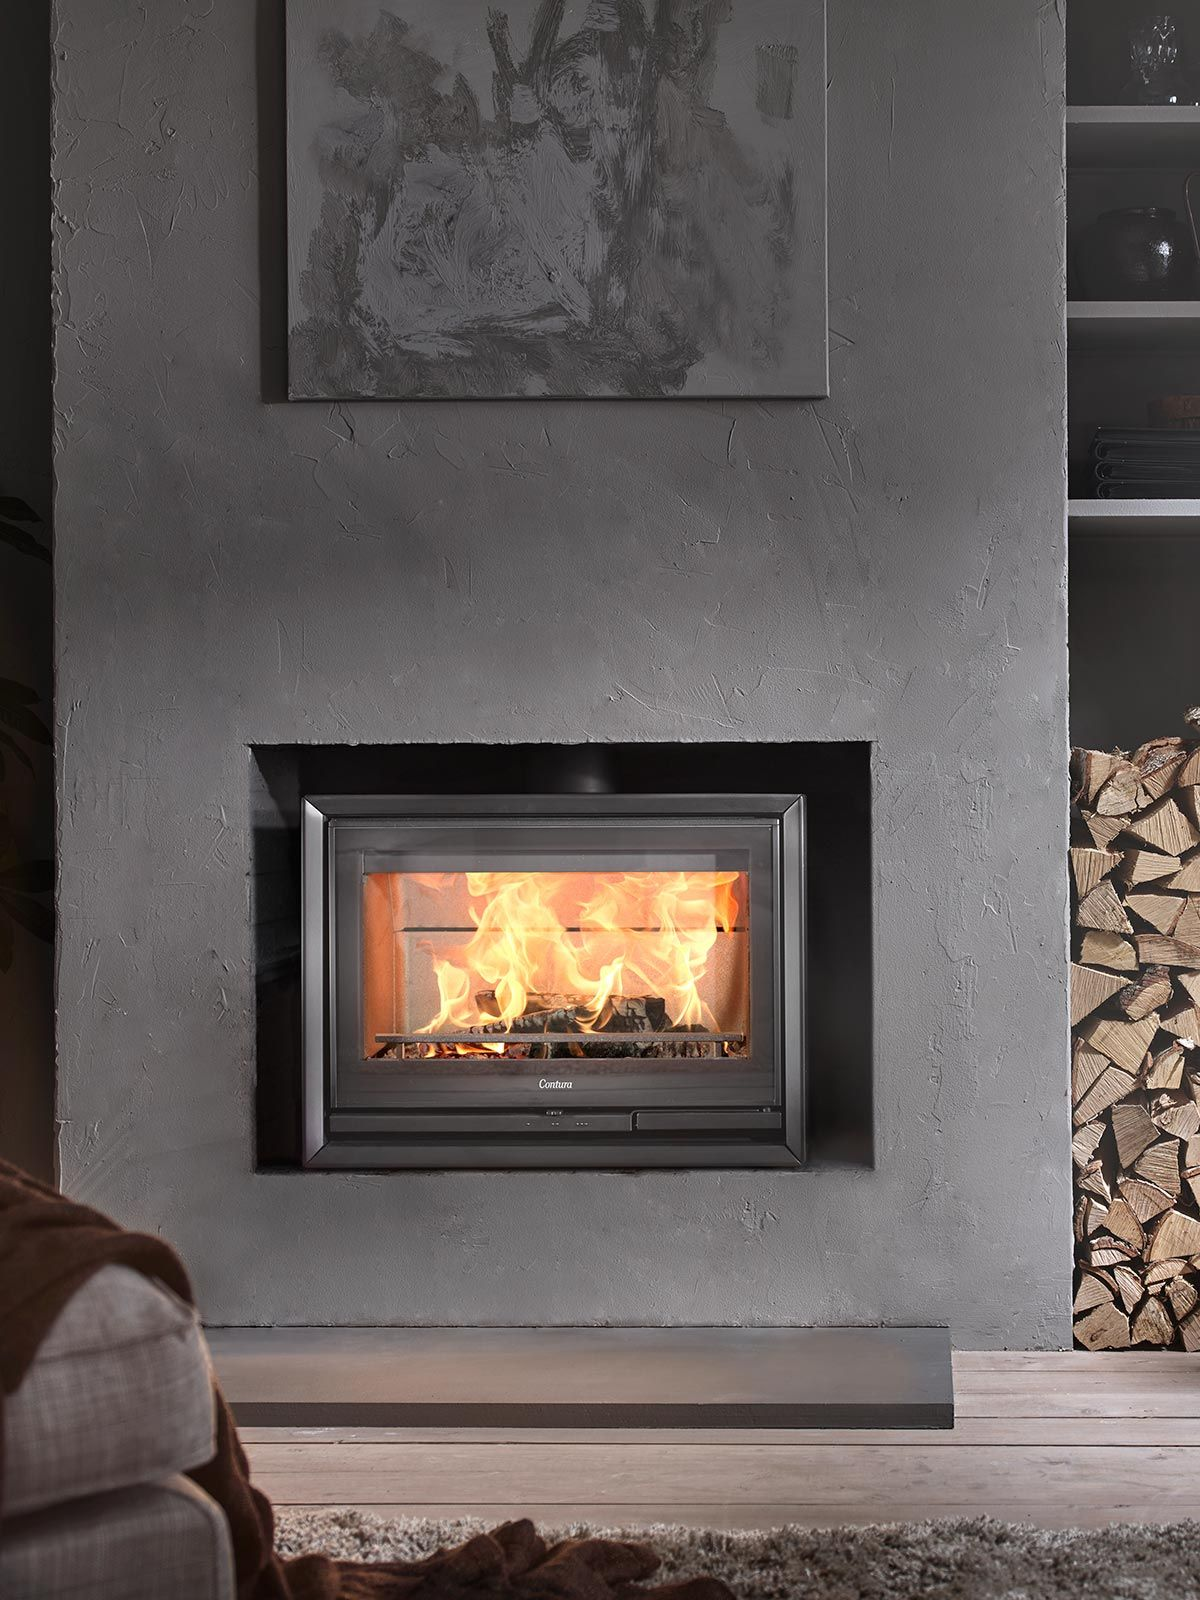 Contura 330 Front View Available In Black Metal With A Glass Door Here Inside An Existing Masonry Chimney Floorlevelfireplace Fireplace Glassdoor